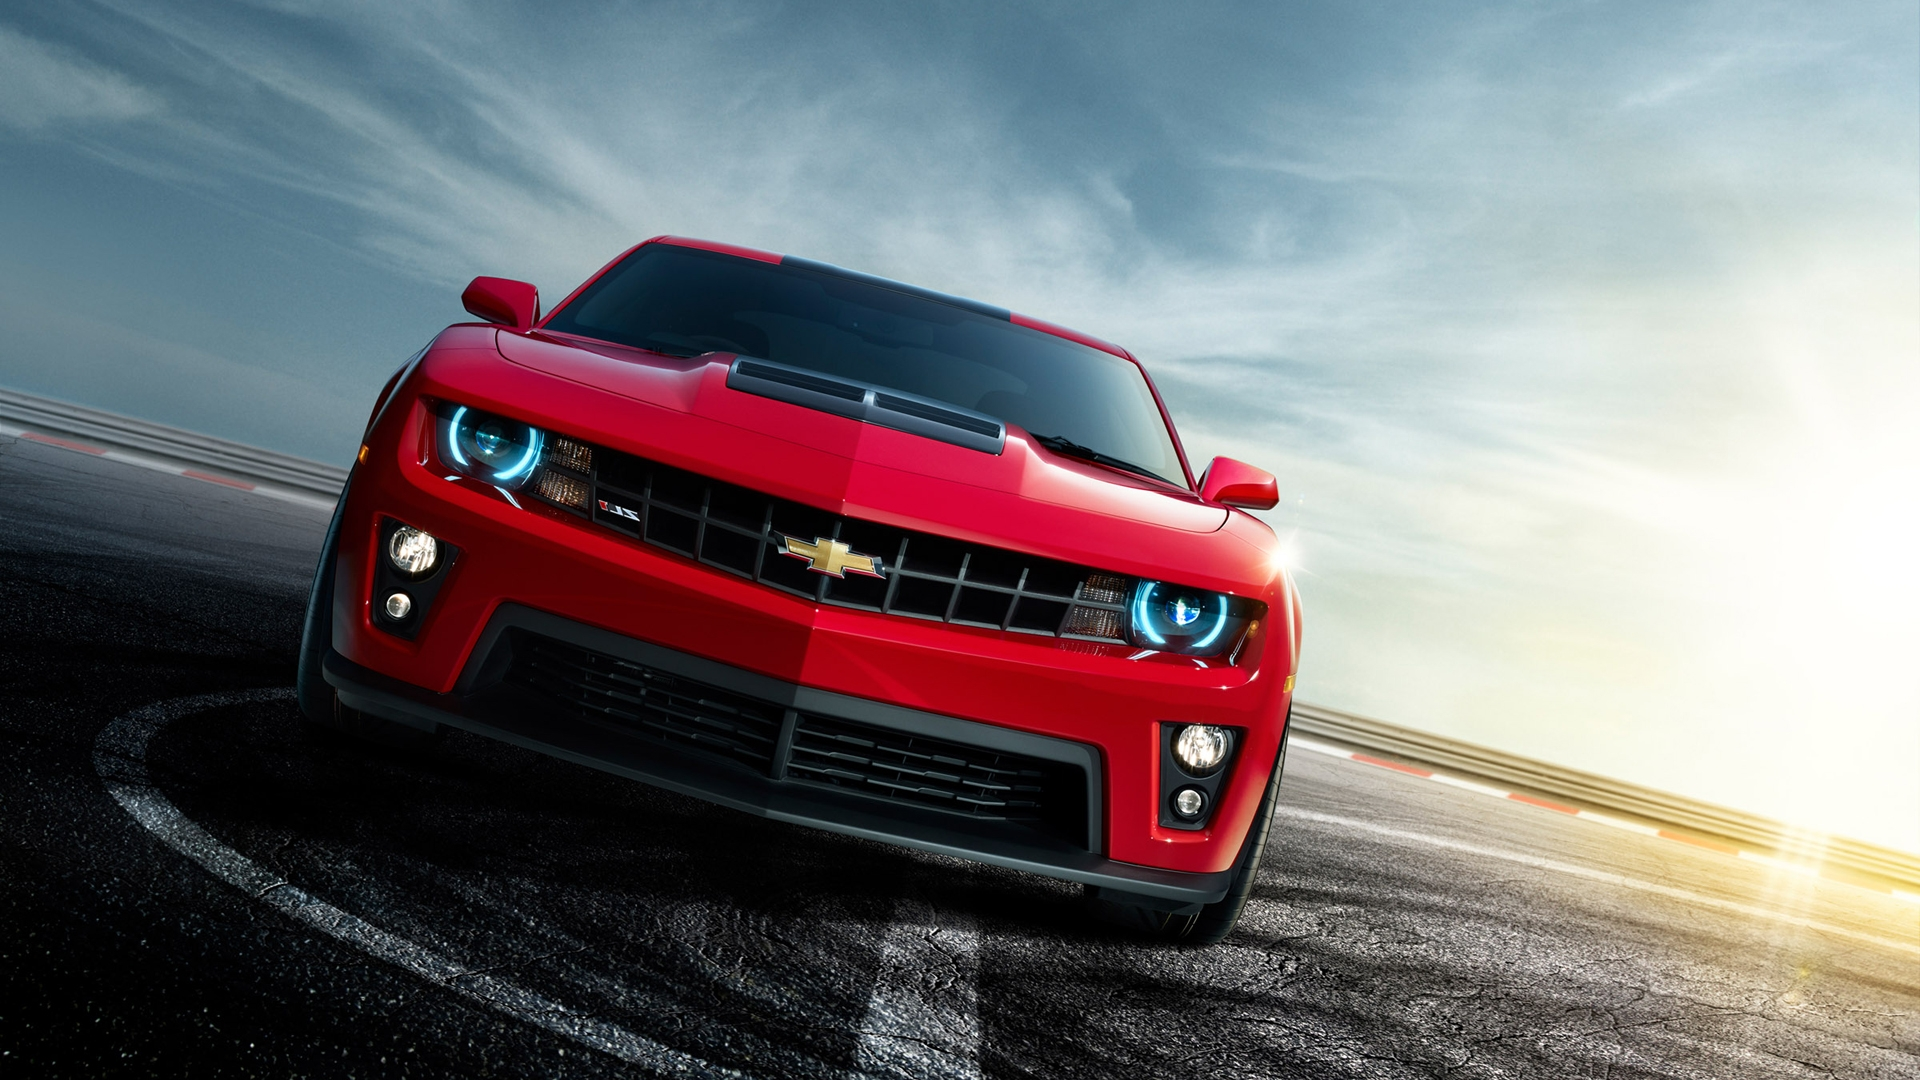 Top Hd Wallpapers Cars Wallpapers Desktop Hd: Camaro ZL1 Wallpapers HD